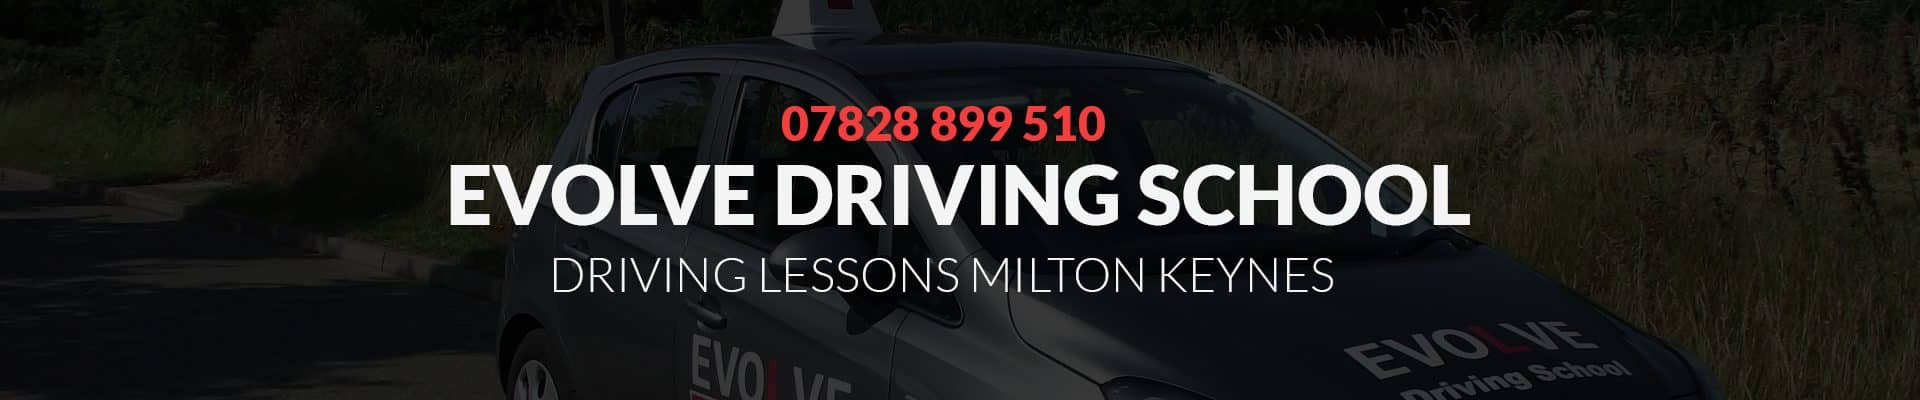 milton keynes driving lessons car image